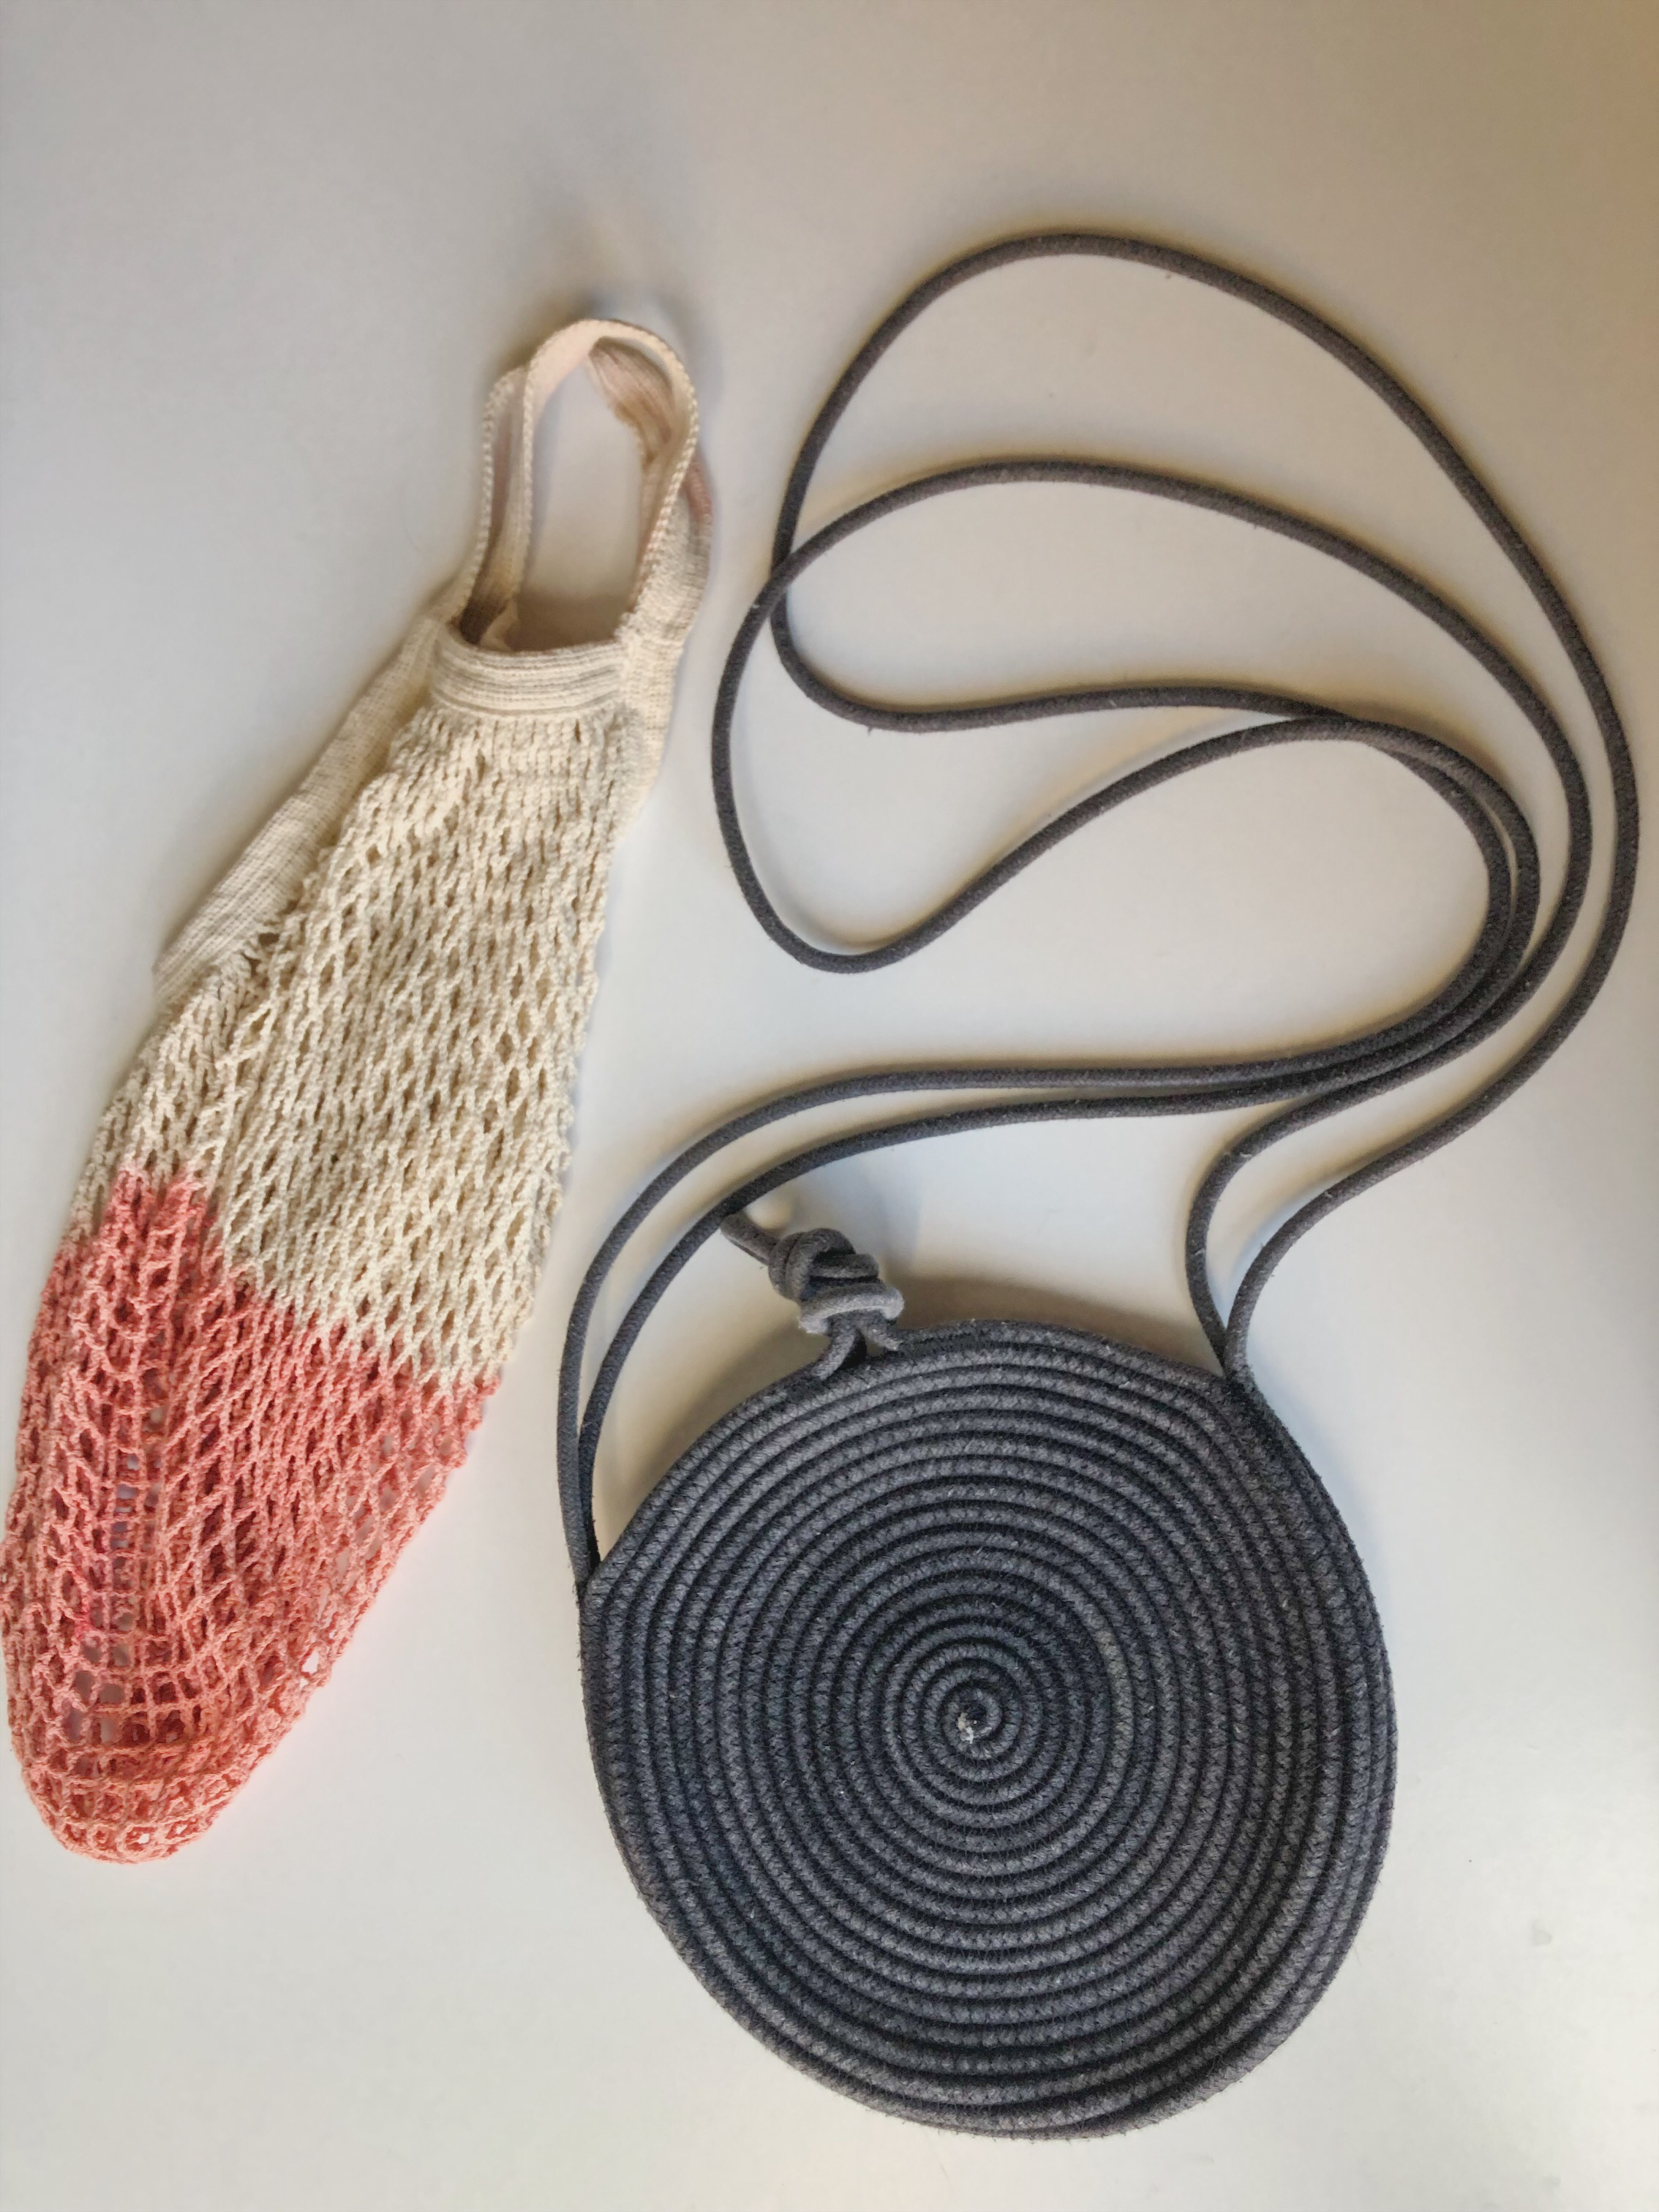 My everyday rope tote and mesh market bag, my two favorites that I've purchased from APPRVL.